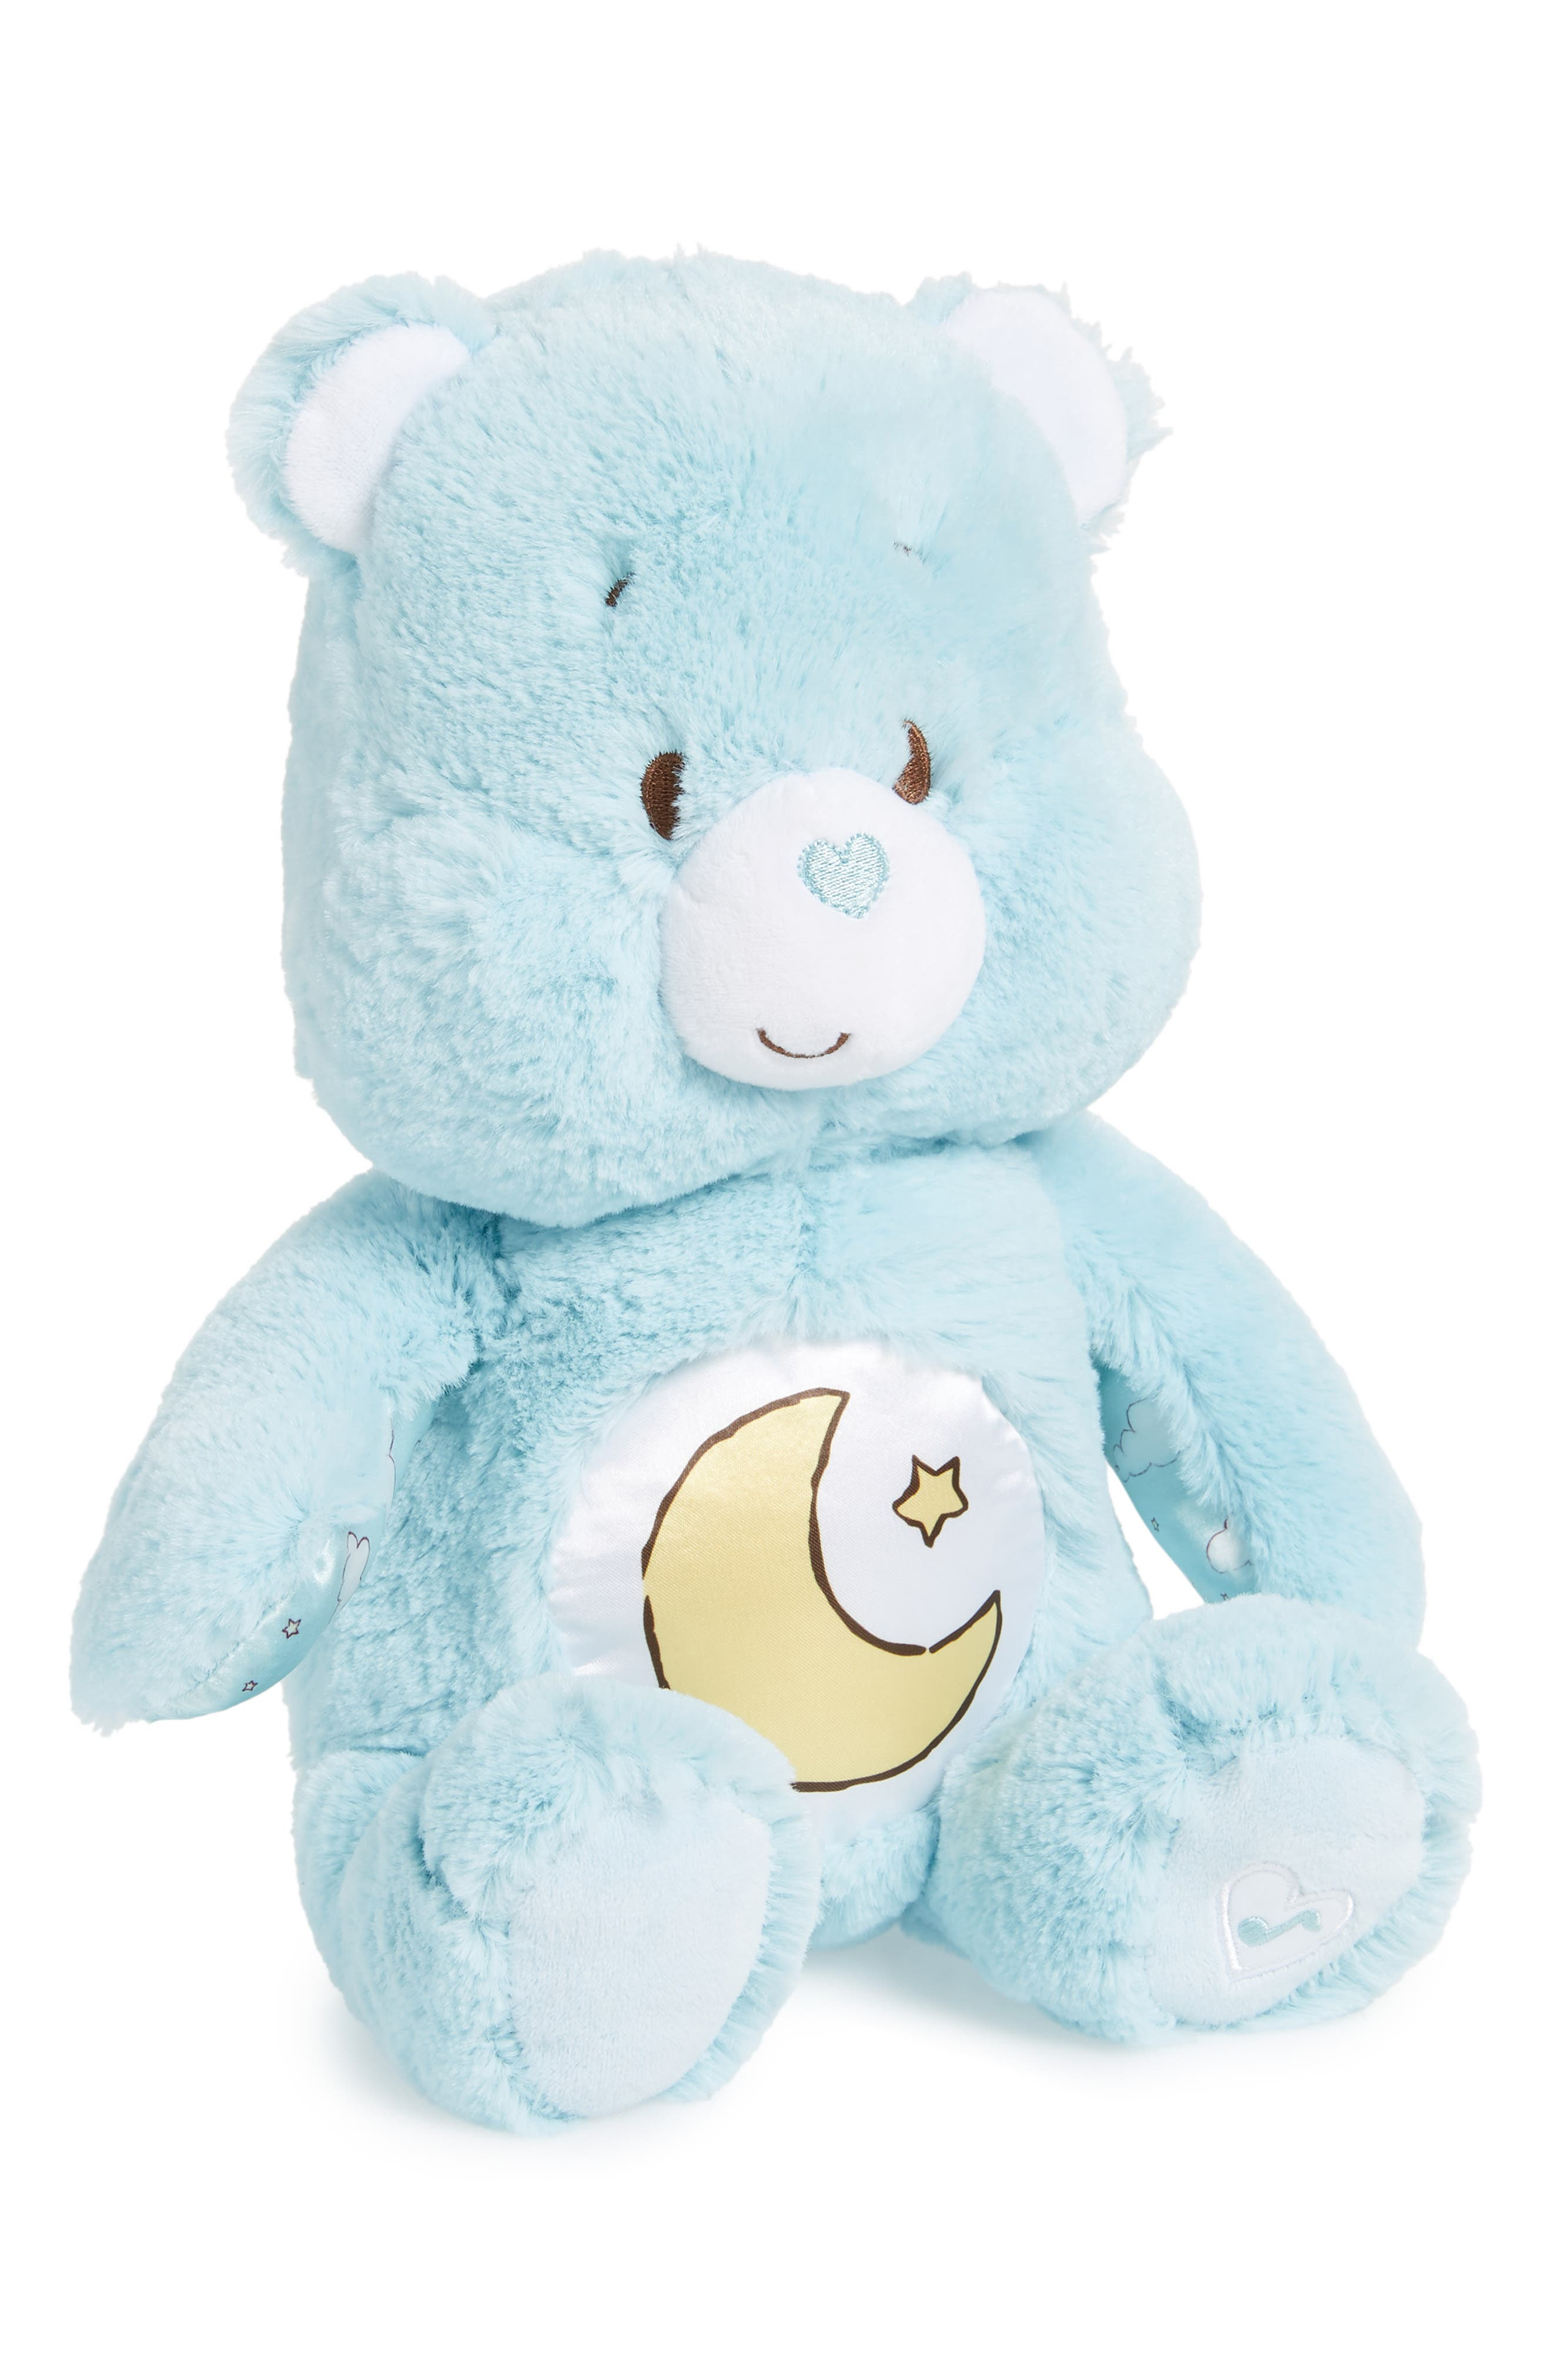 KIDS PREFERRED Care Bears Soother Bear Light-Up Plush Toy, Main, color, 400